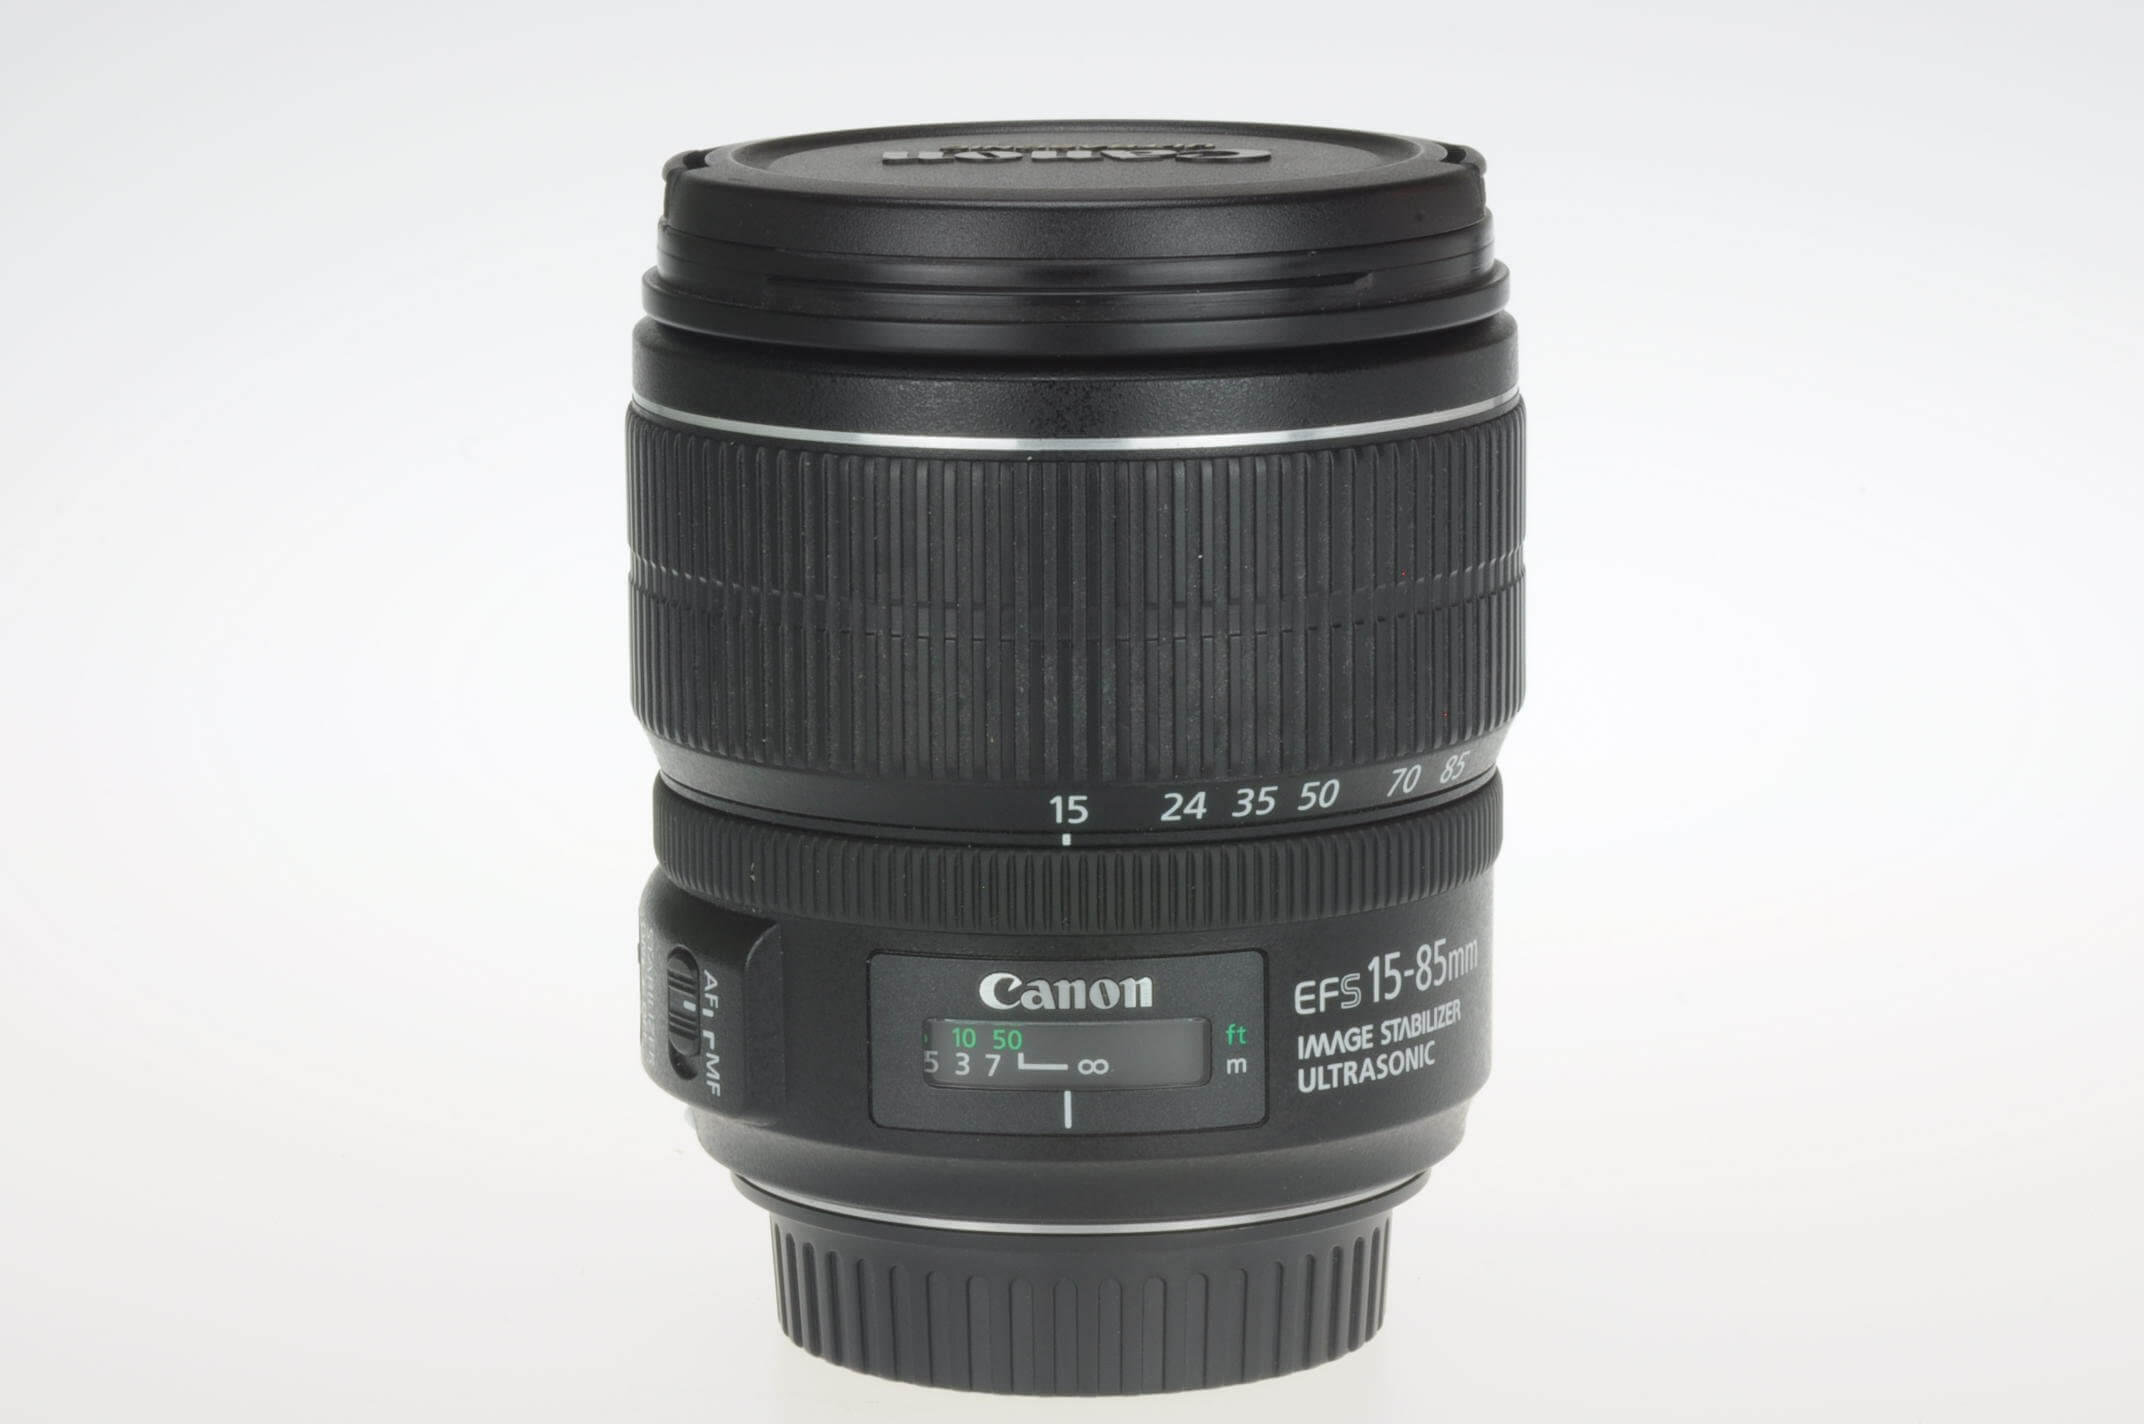 Canon 15-85mm f3.5-5.6 EF-S IS USM, excellent condition!